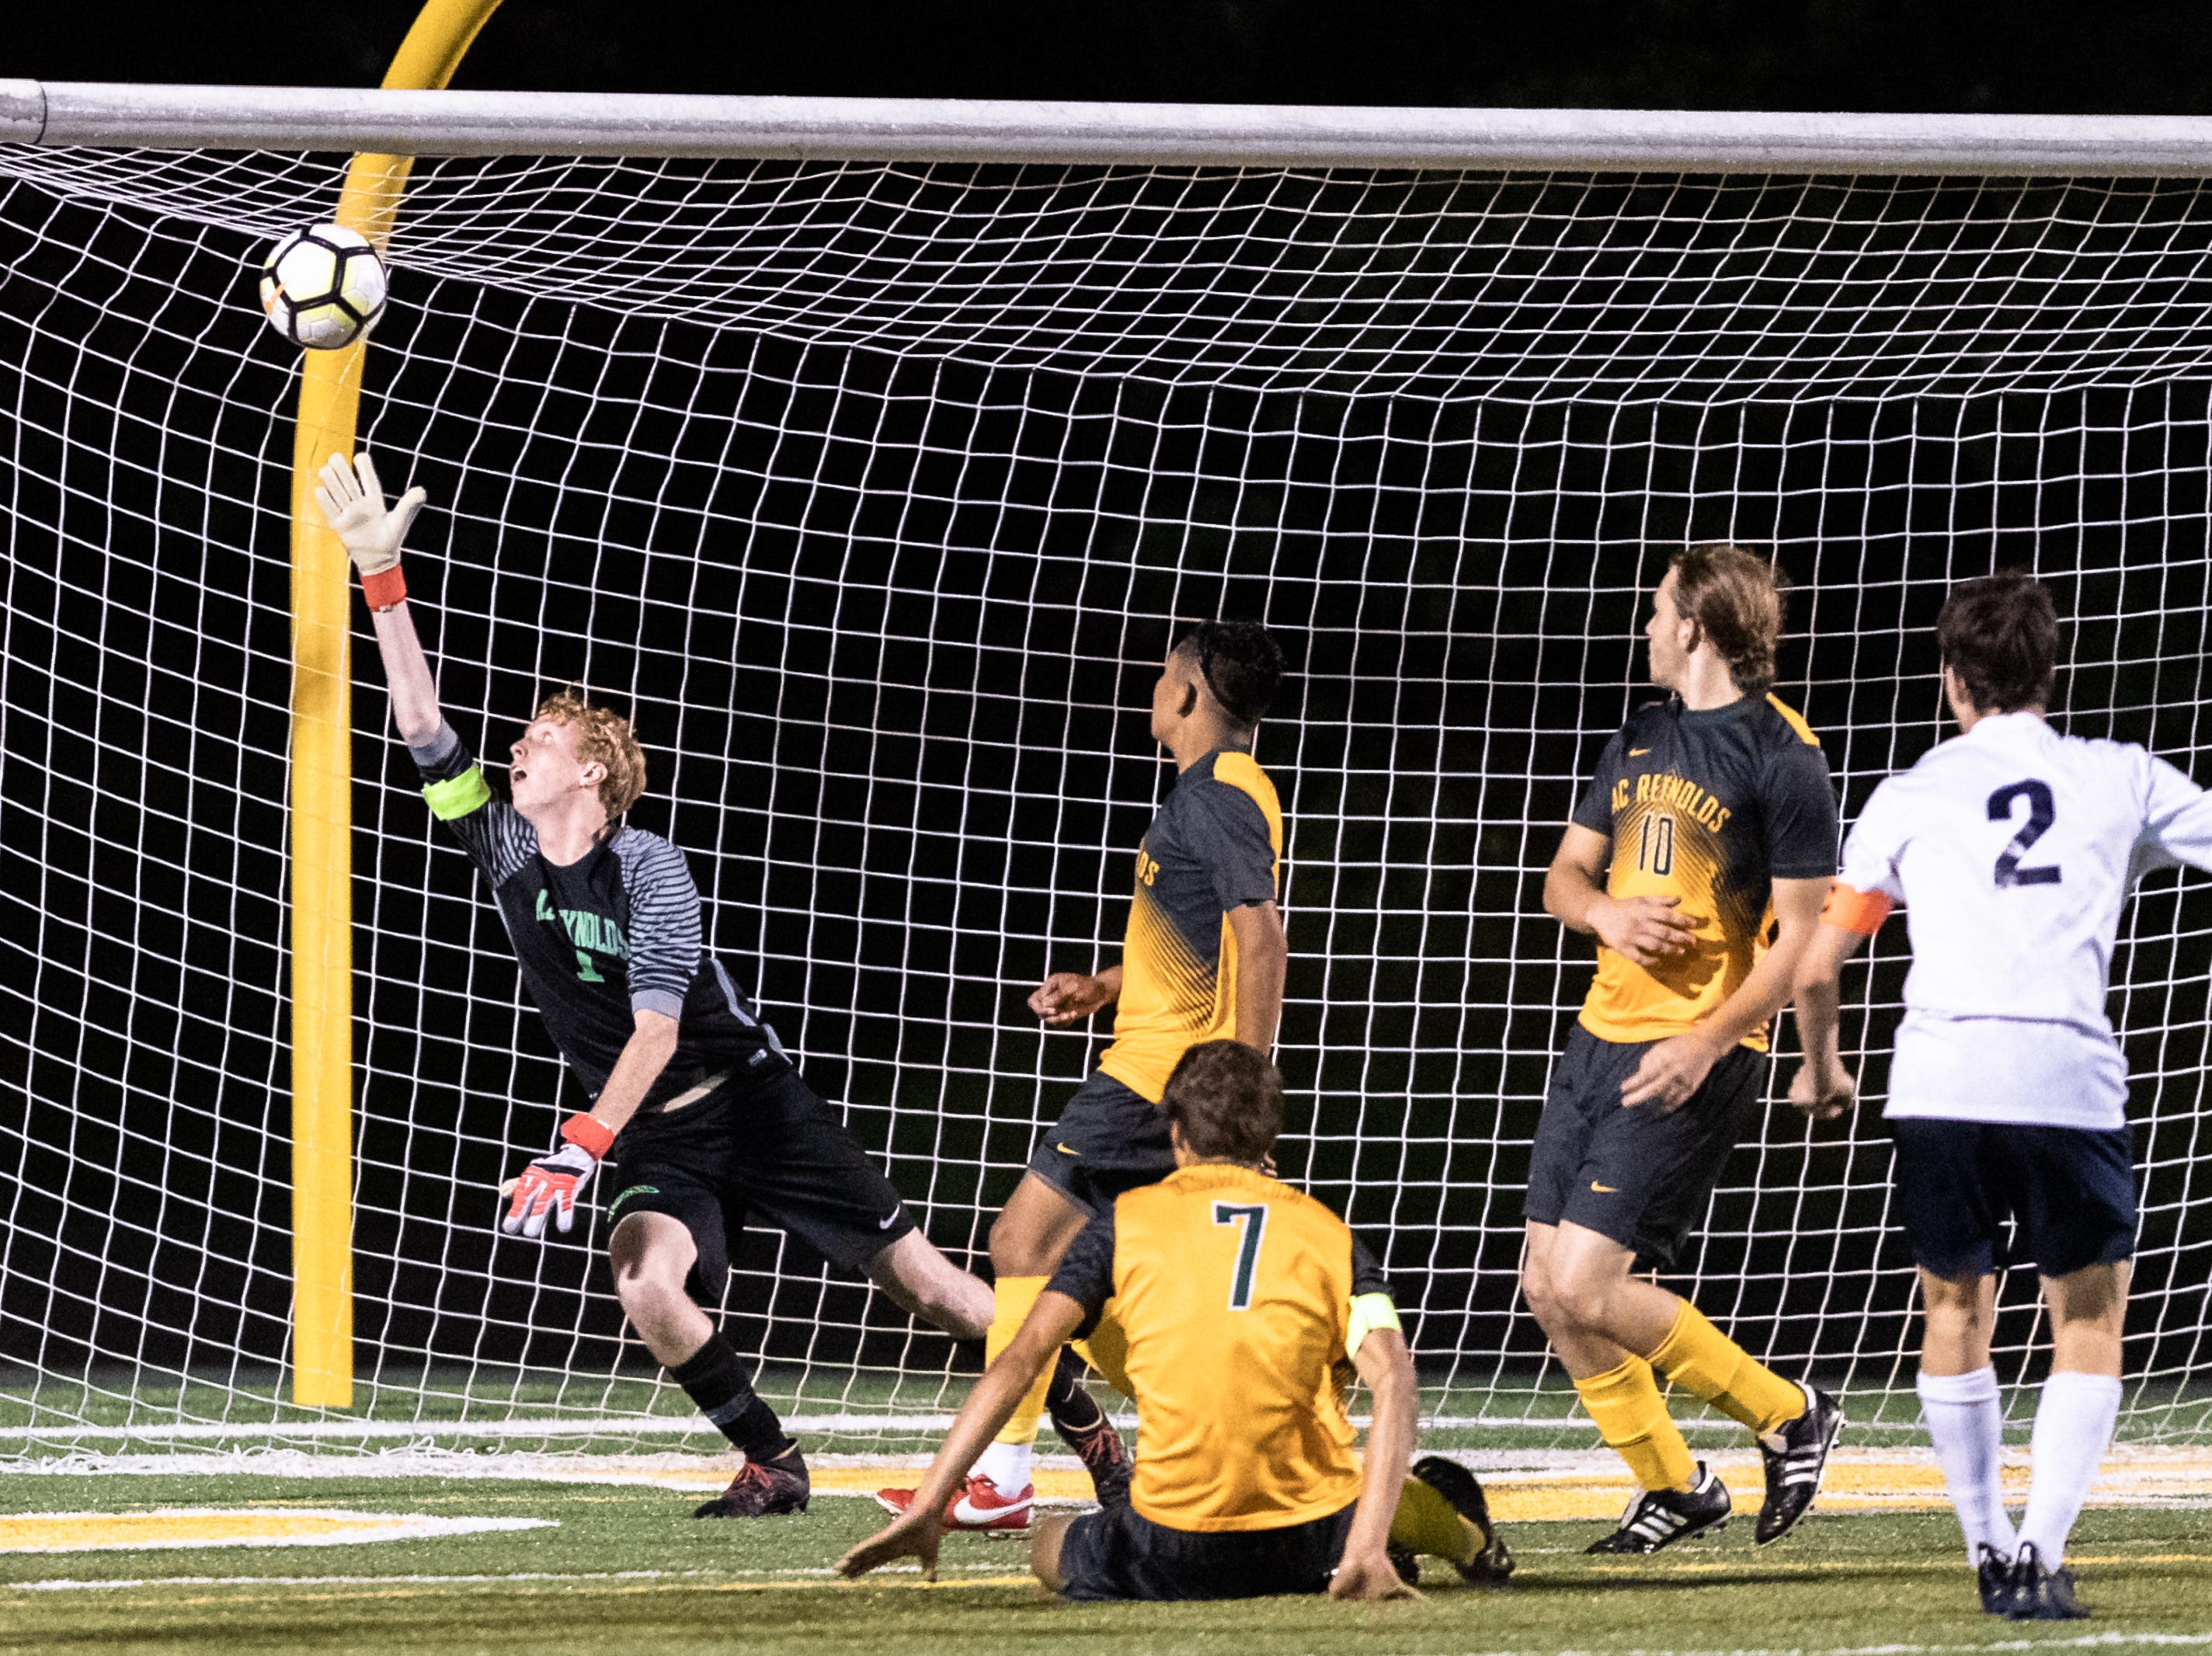 Roberson's Henry Asbill gets a shot past Reynolds' goalkeeper Alec Stacey during their game Sept. 24, 2018. Reynolds won 2-1.